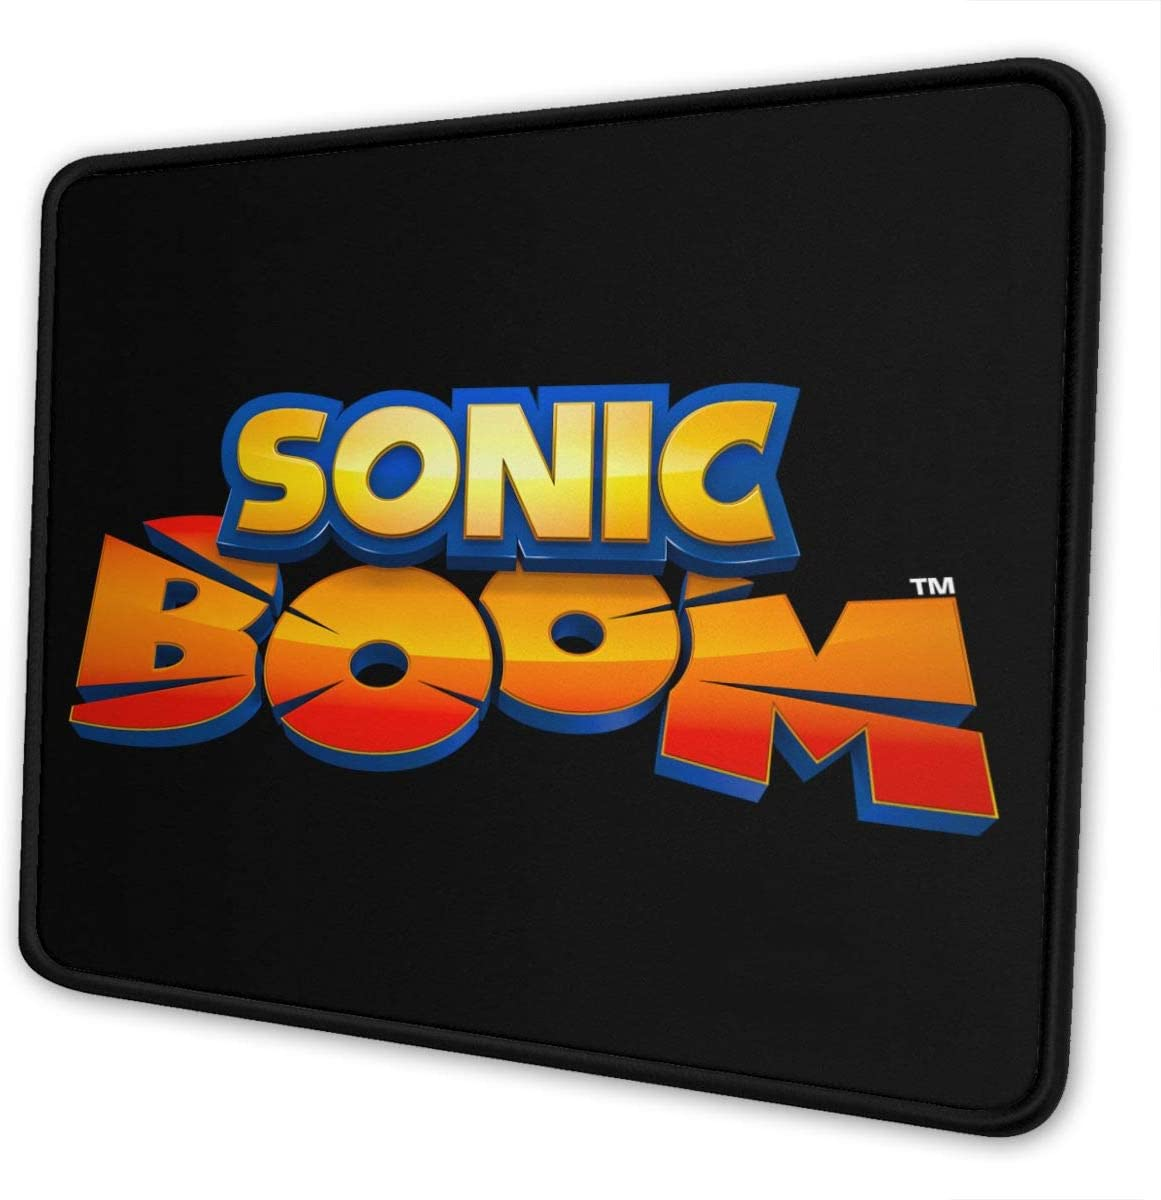 Sonic-The-Hedgehog Gaming Mouse Pad Keyboards Mouse Mat Non-Slip Rubber Game Mousepad with Stitched Edge Wrist Rests Multifunctional Big Office Desk Pad for Pc Computer Laptop 7 X 8.6 in